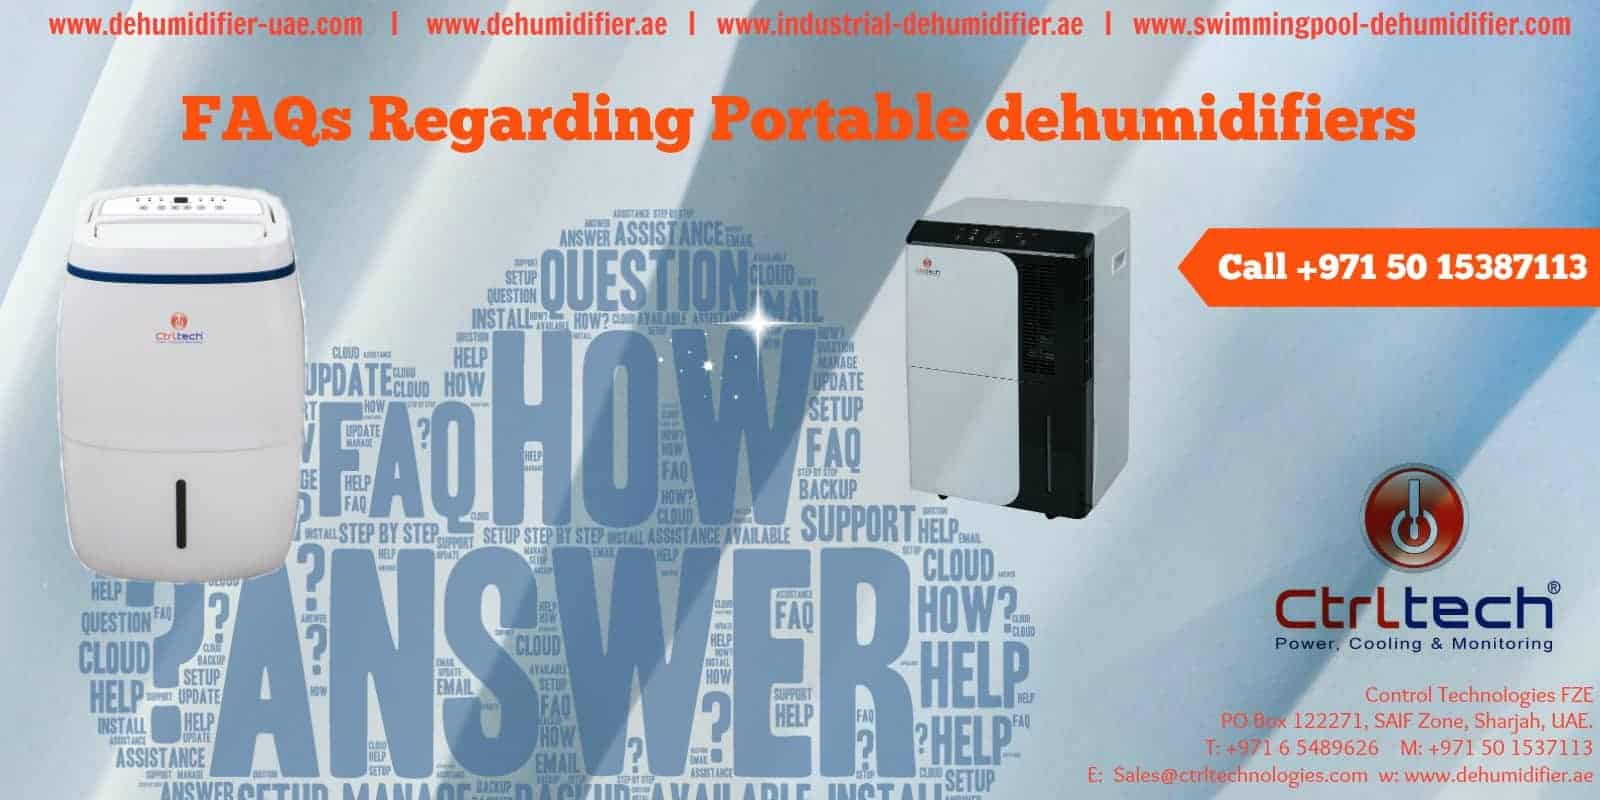 FAQs Regarding Portable dehumidifier or room dehumidifier.